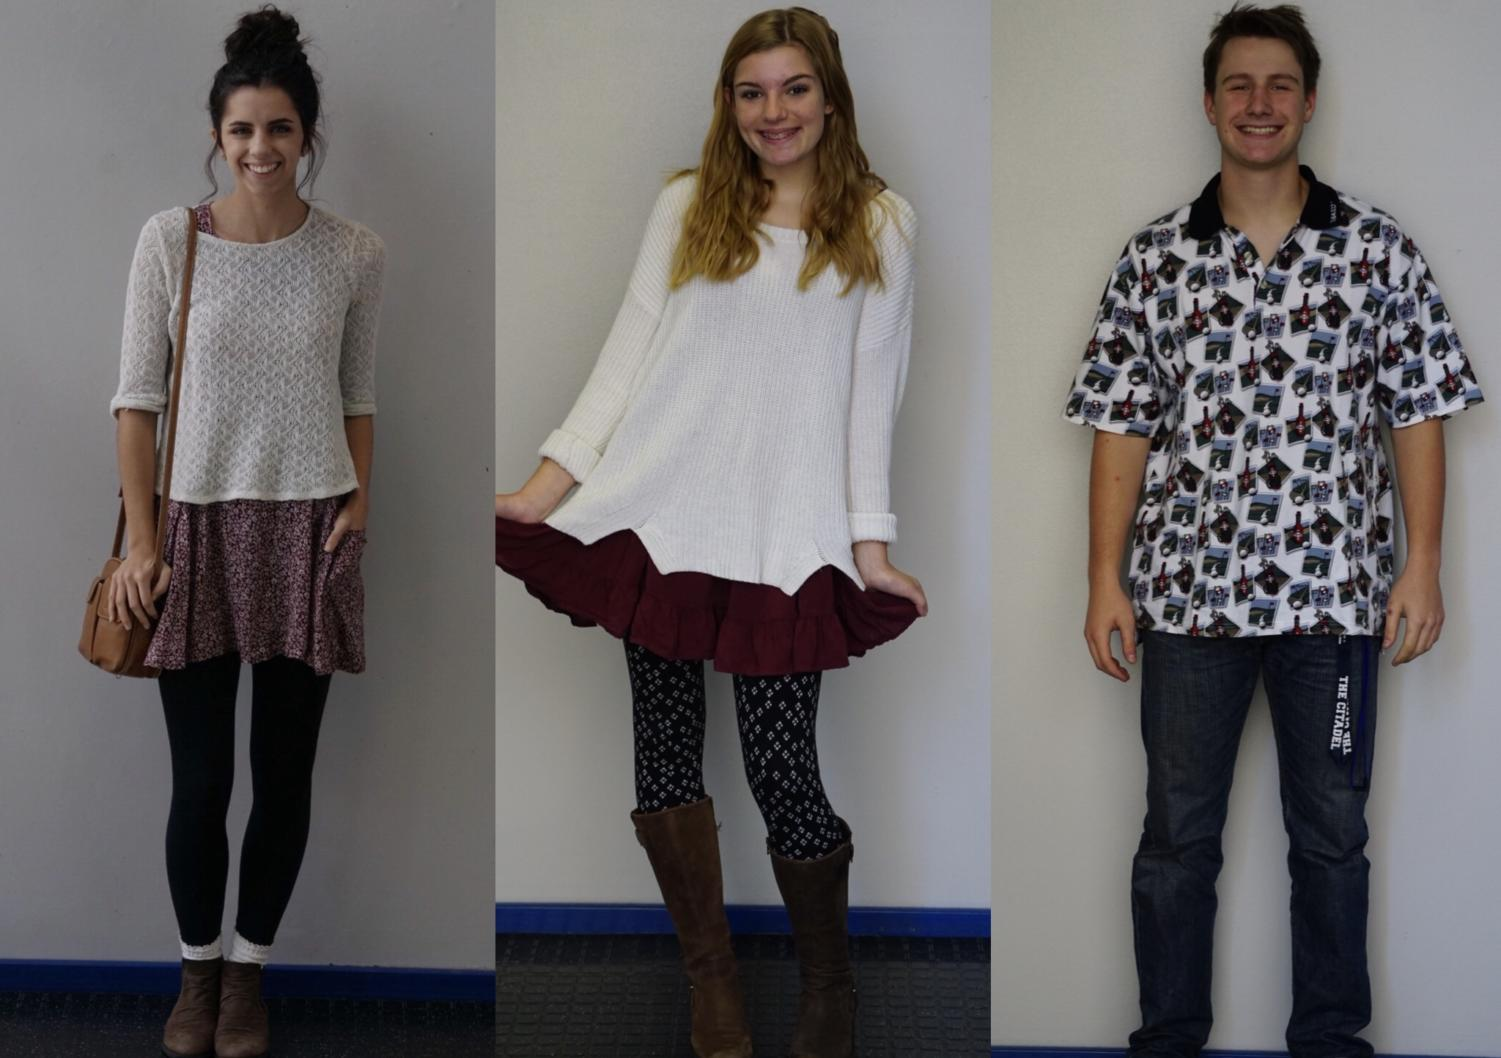 Students wearing their thrifty outfits, from left to right: Peyton Nease, Sophie Nauta, and Mac Reaney